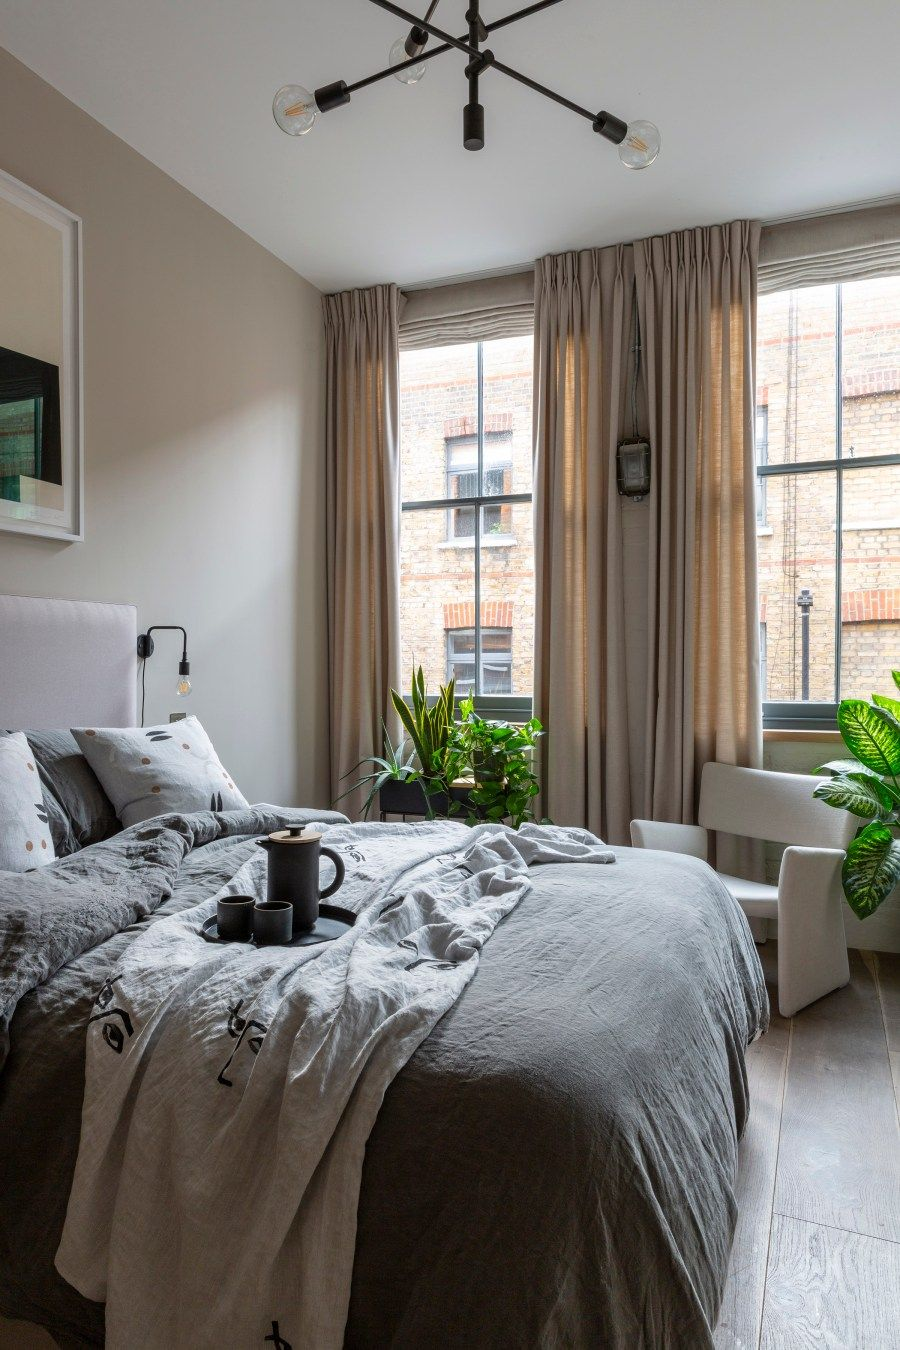 A Cosy, Beige Bedroom In A